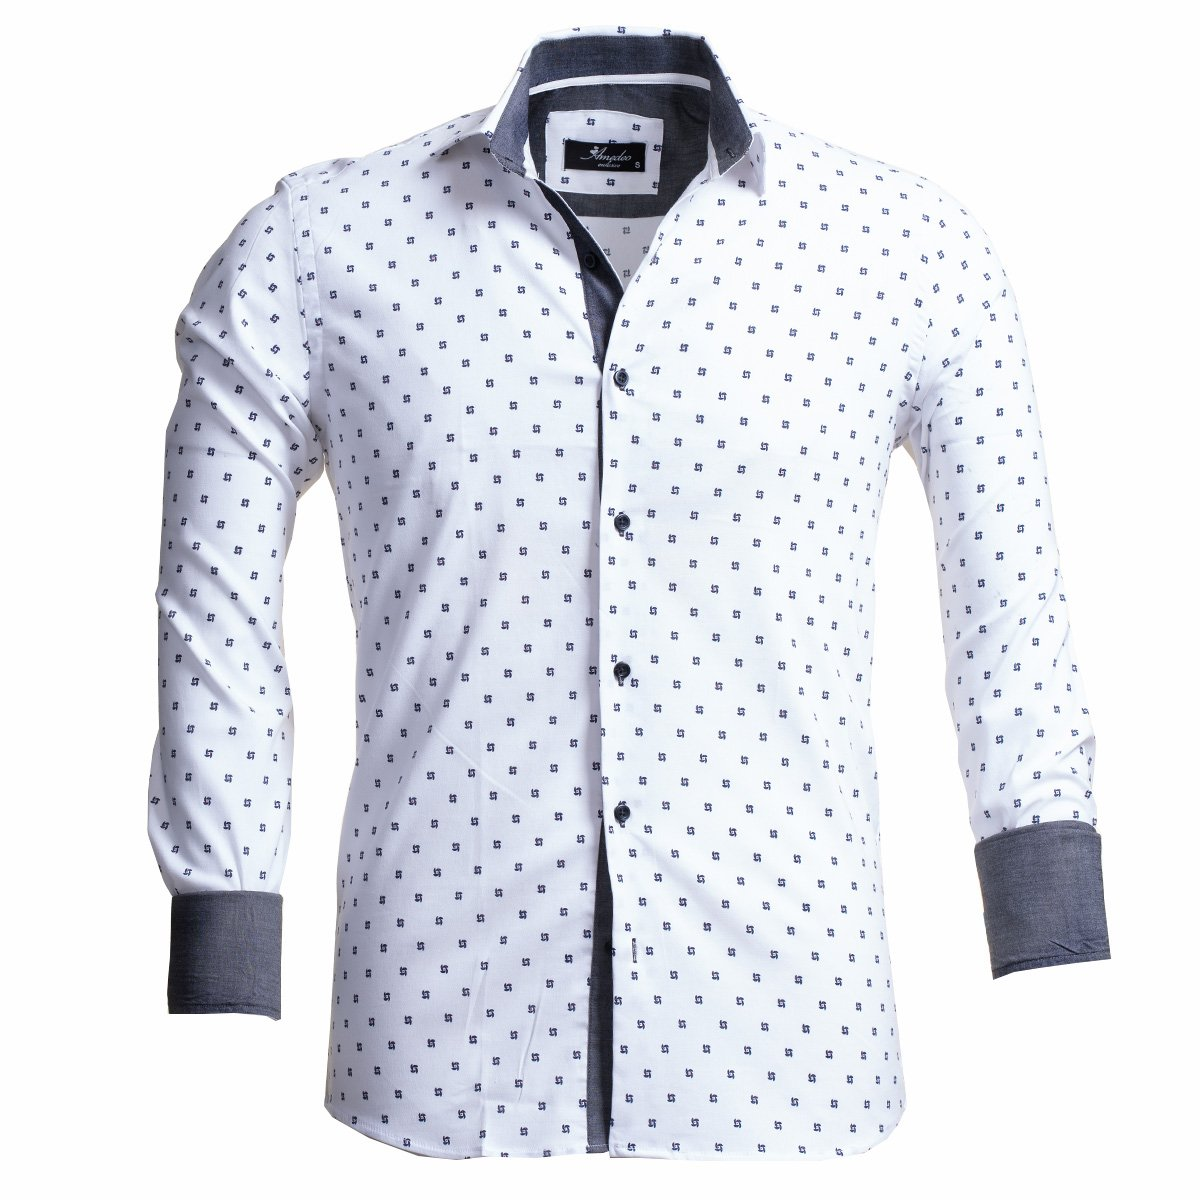 White With Black Dots Men's Slim Fit French Cuff Dress Shirts with Cufflink Holes - Casual and Formal - Amedeo Exclusive